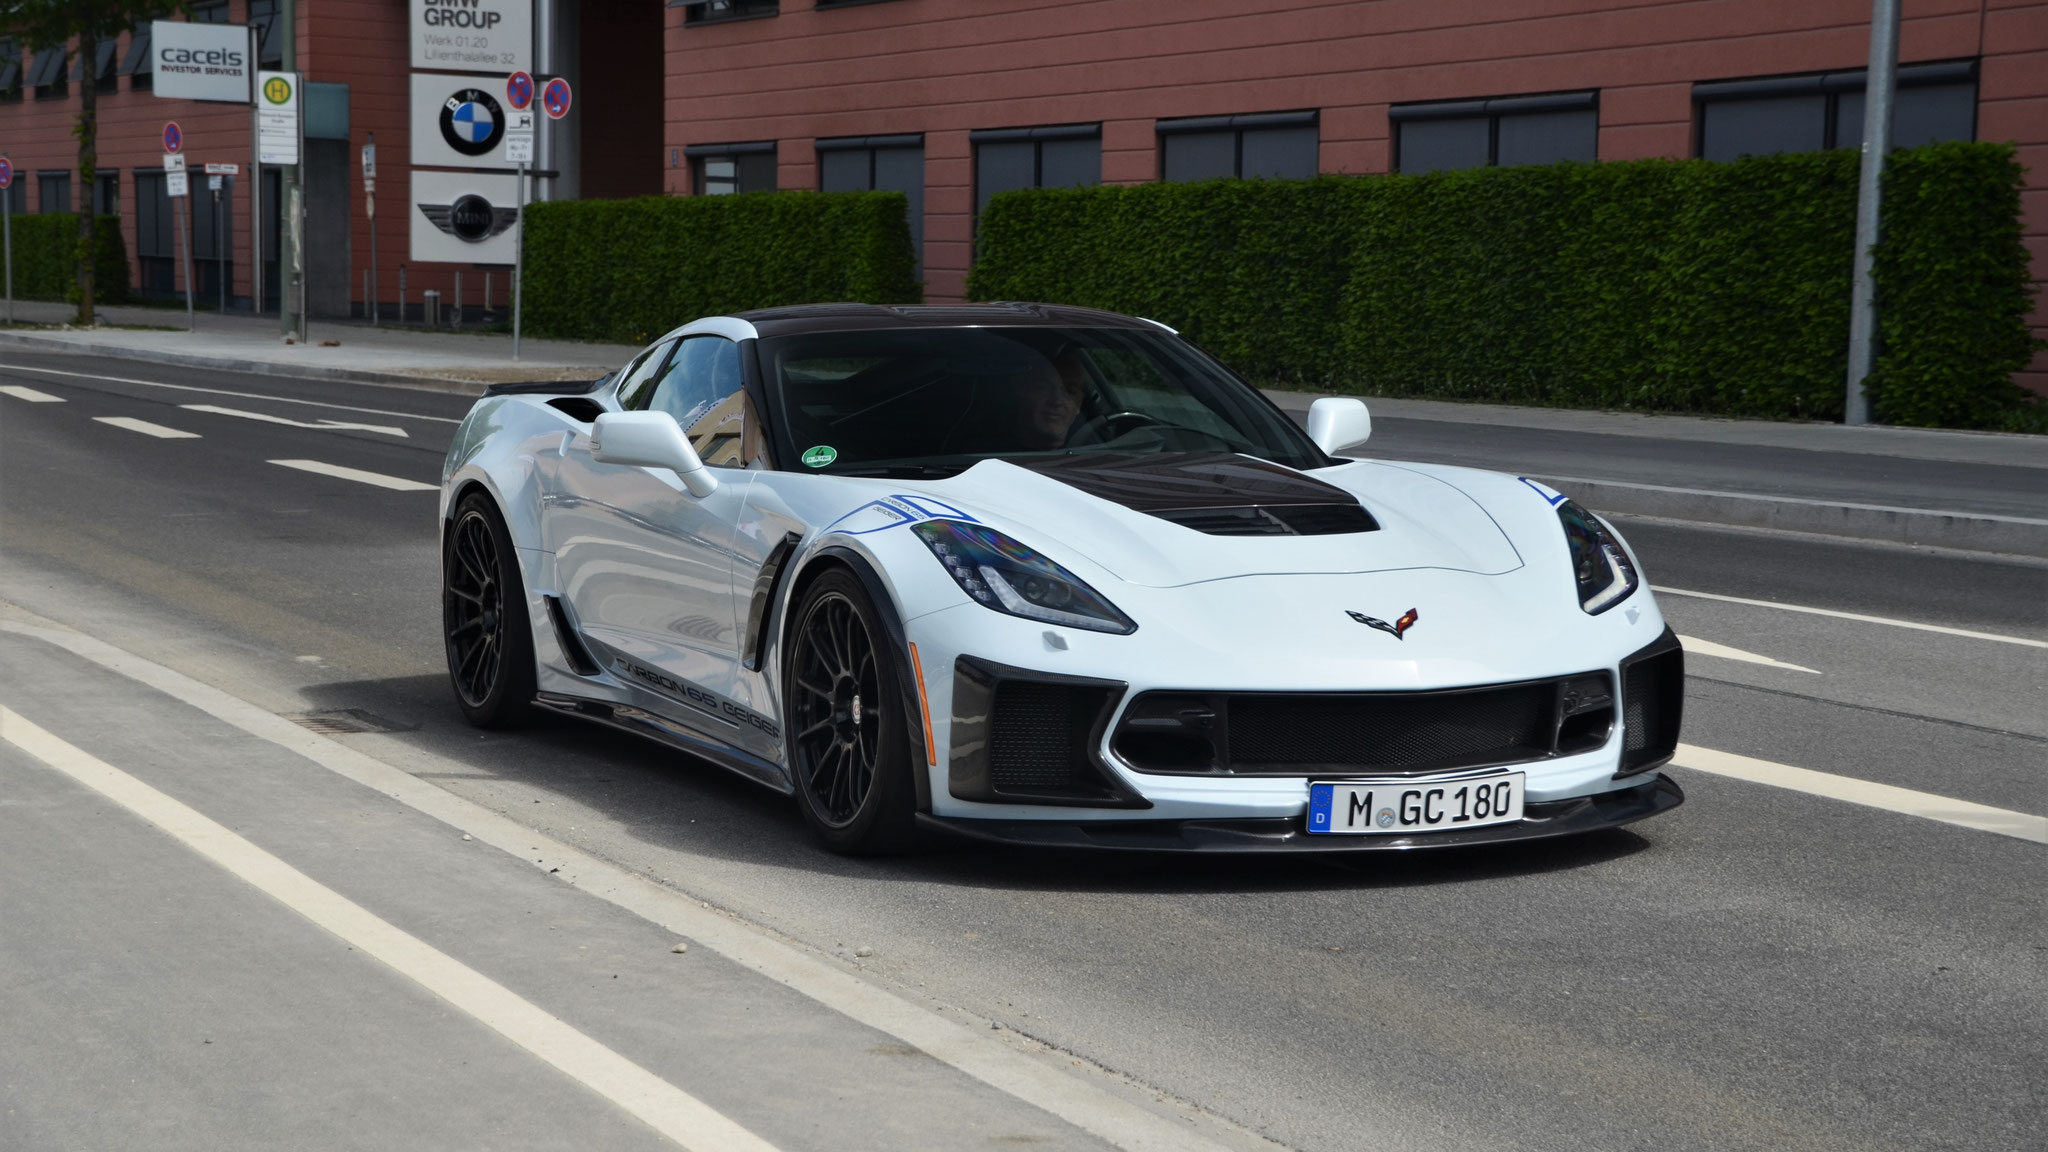 Chevrolet Corvette C7  Grand Sport Carbon65 Geiger - M-GC-180